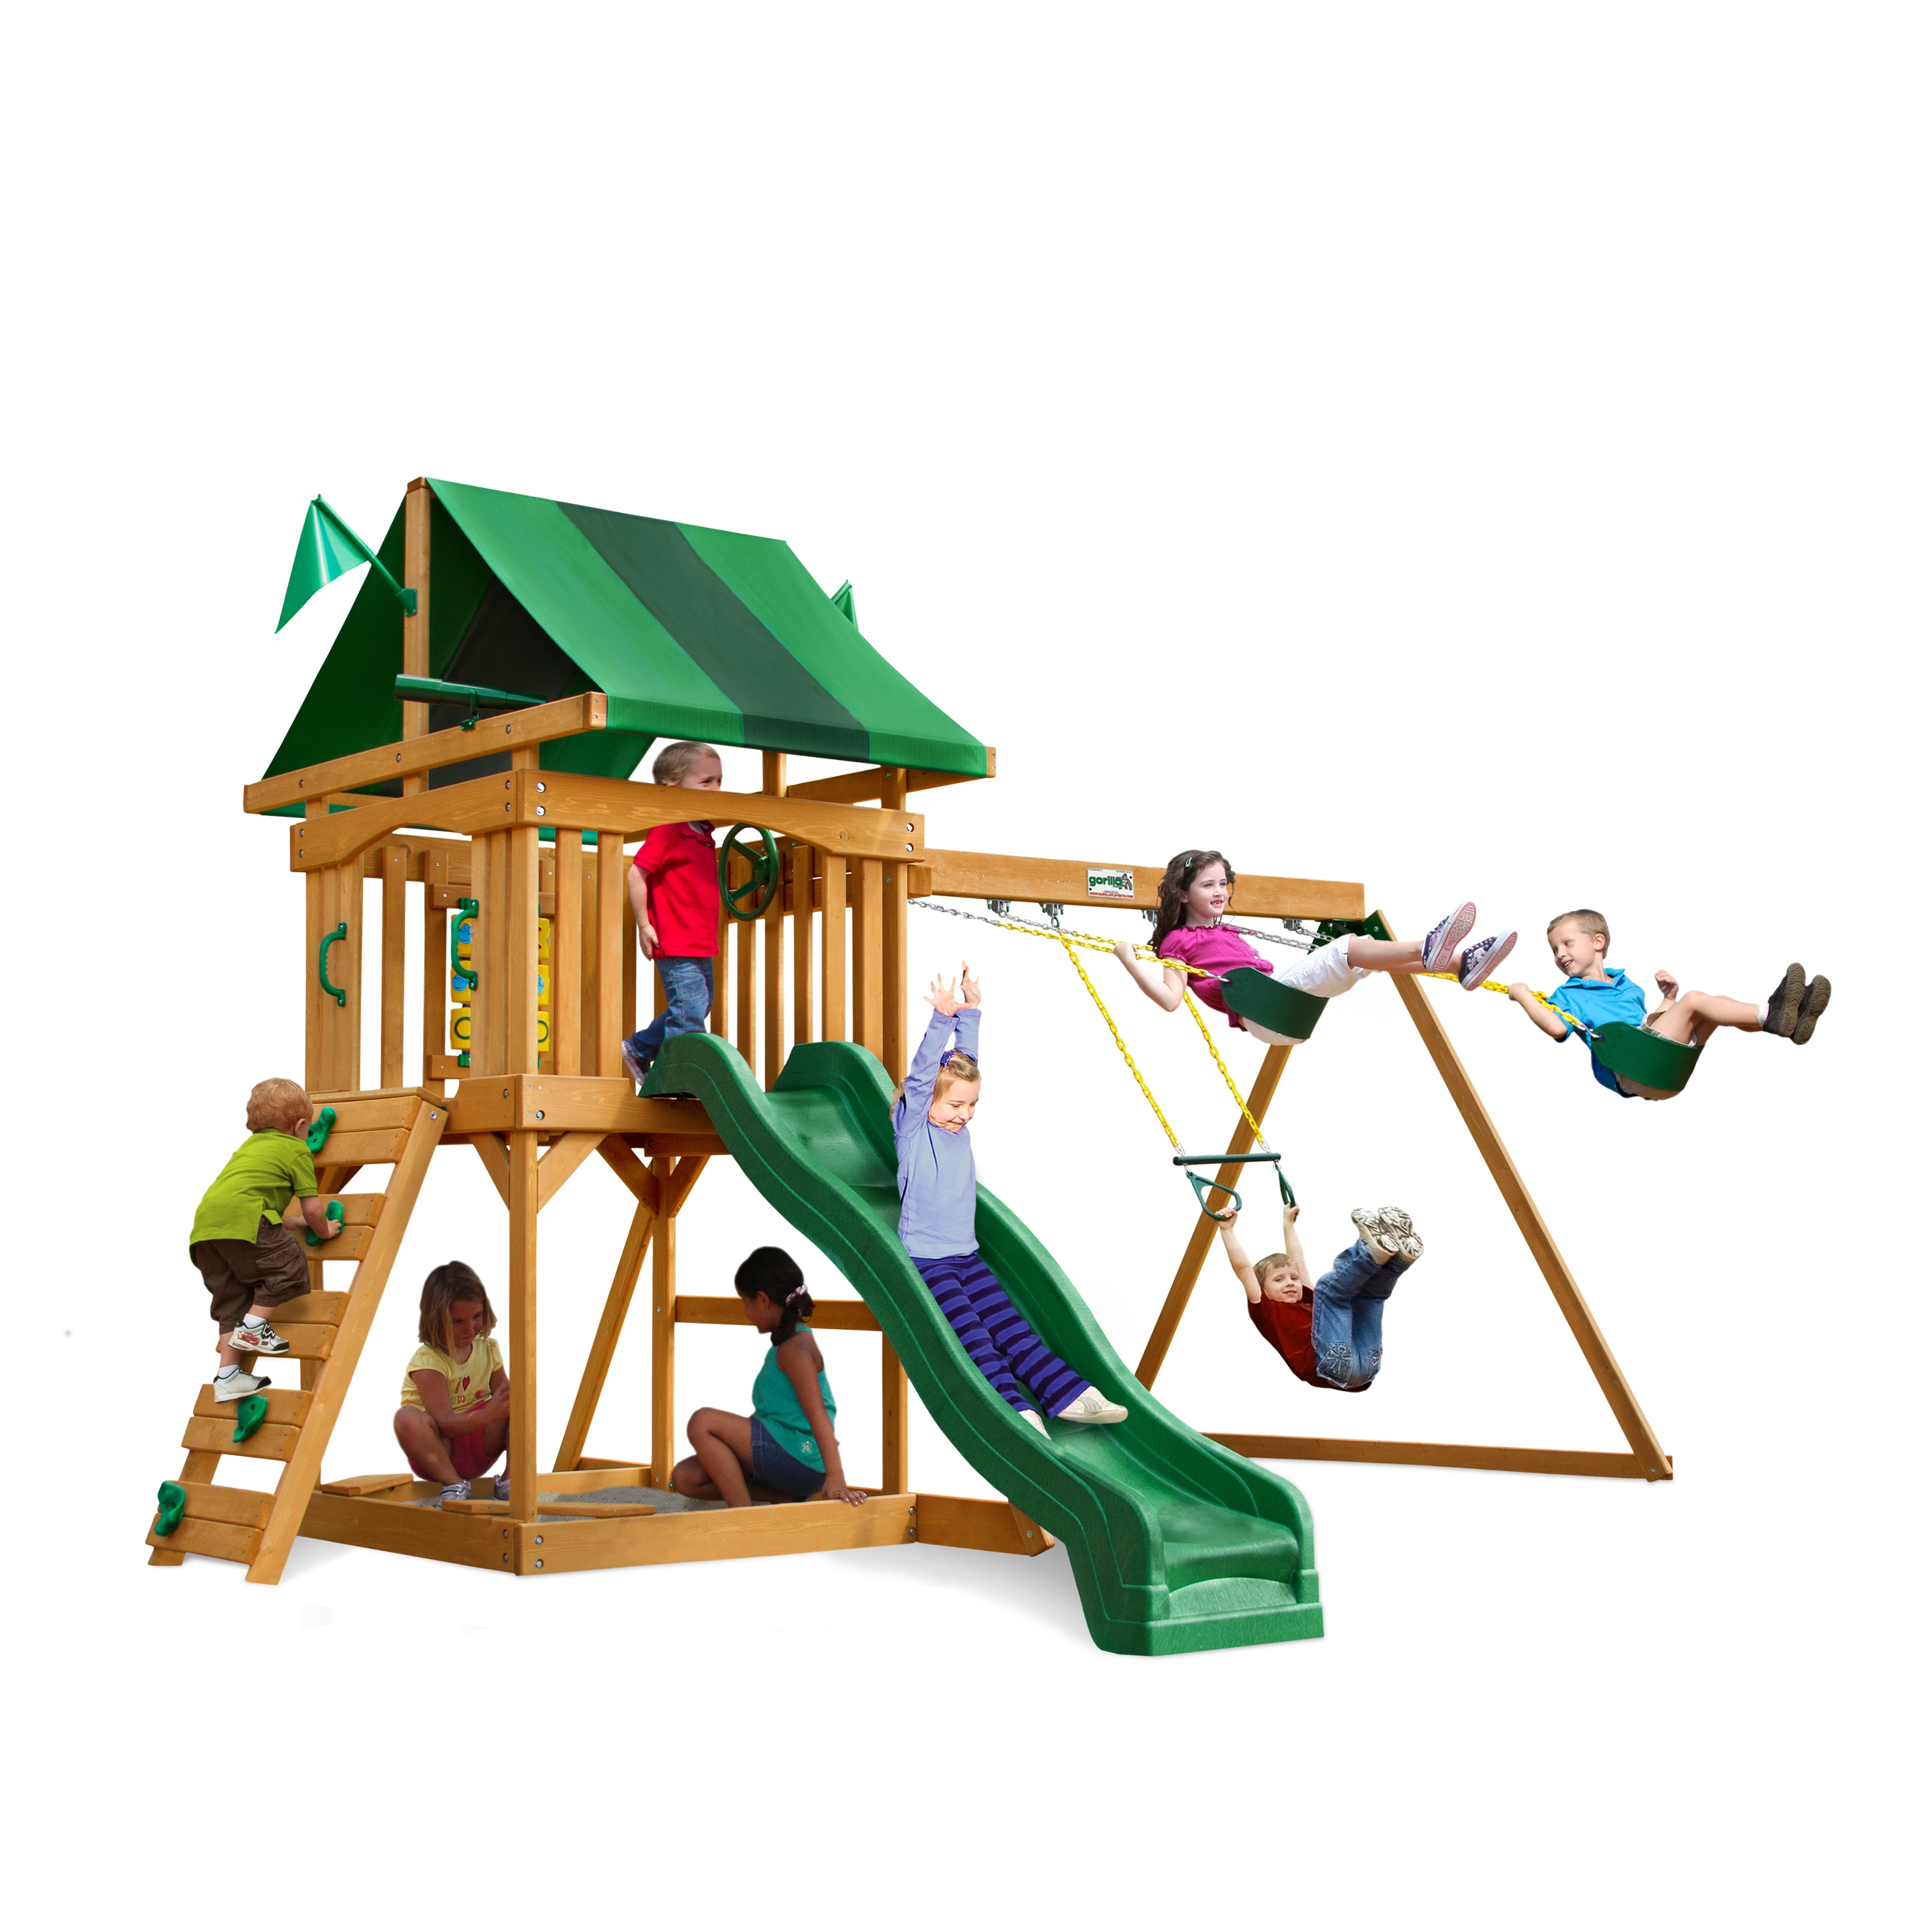 Gorilla PlaySets Cadence Swing Set at Sears.com